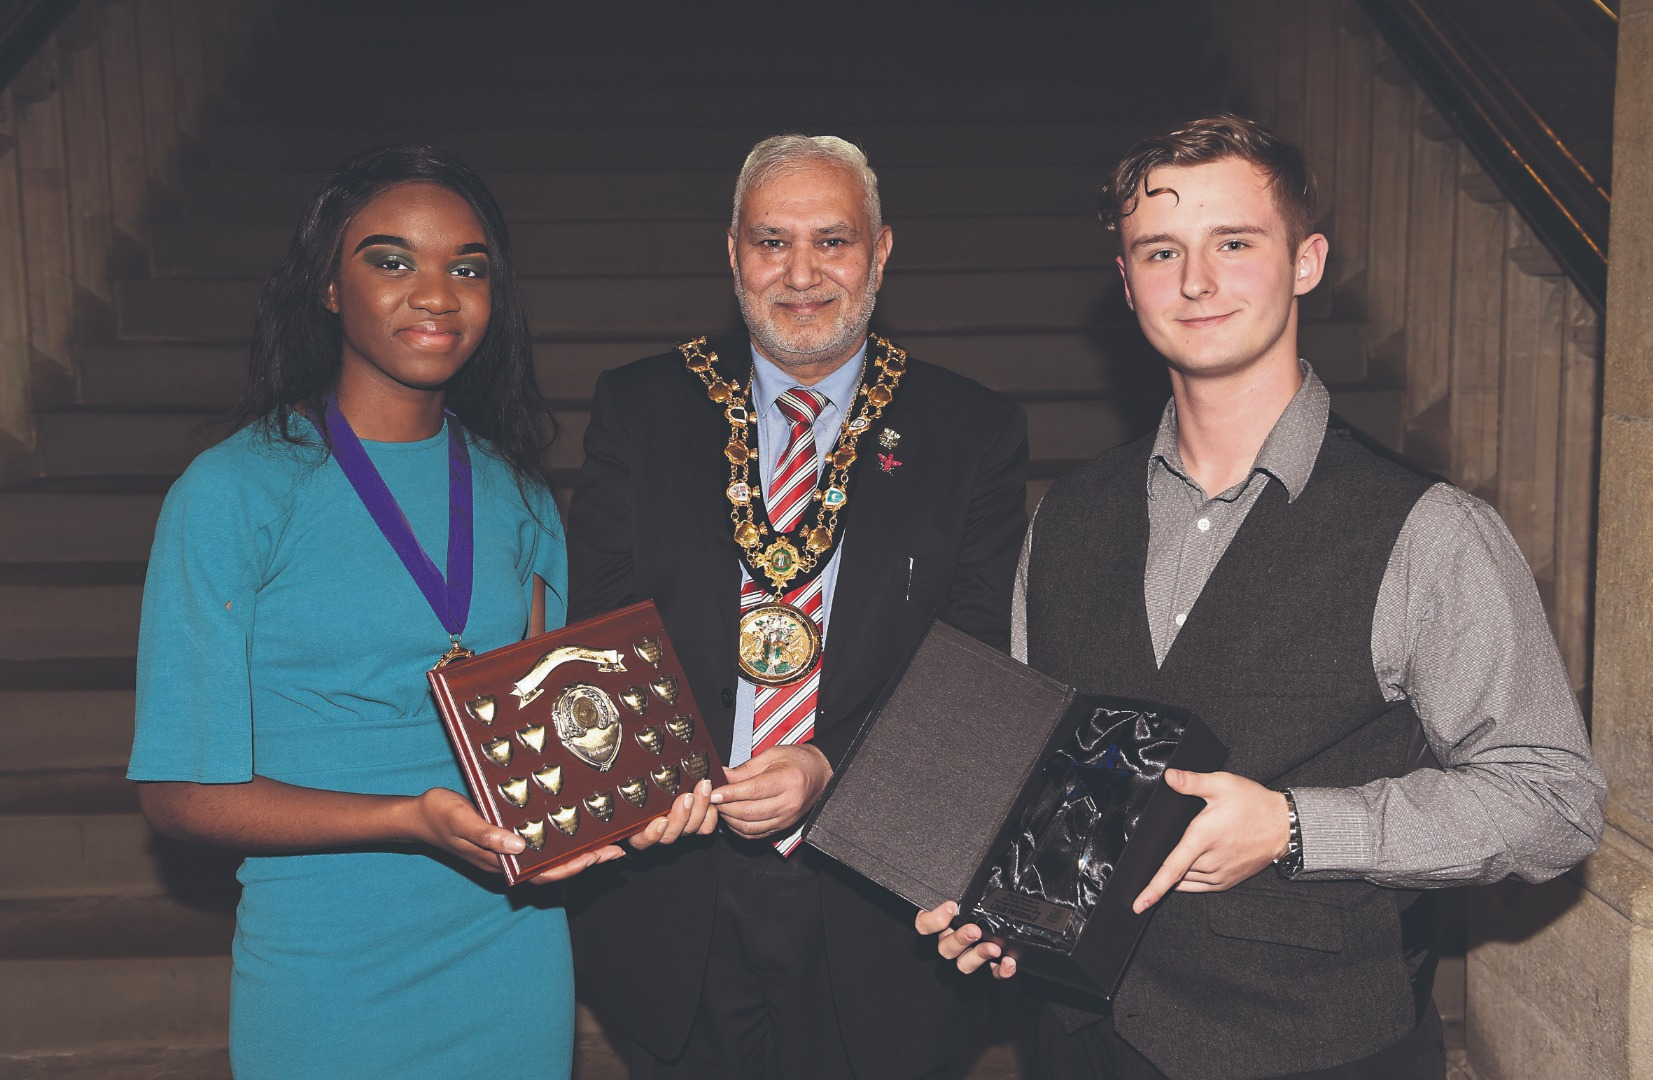 New member of youth parliament crowned